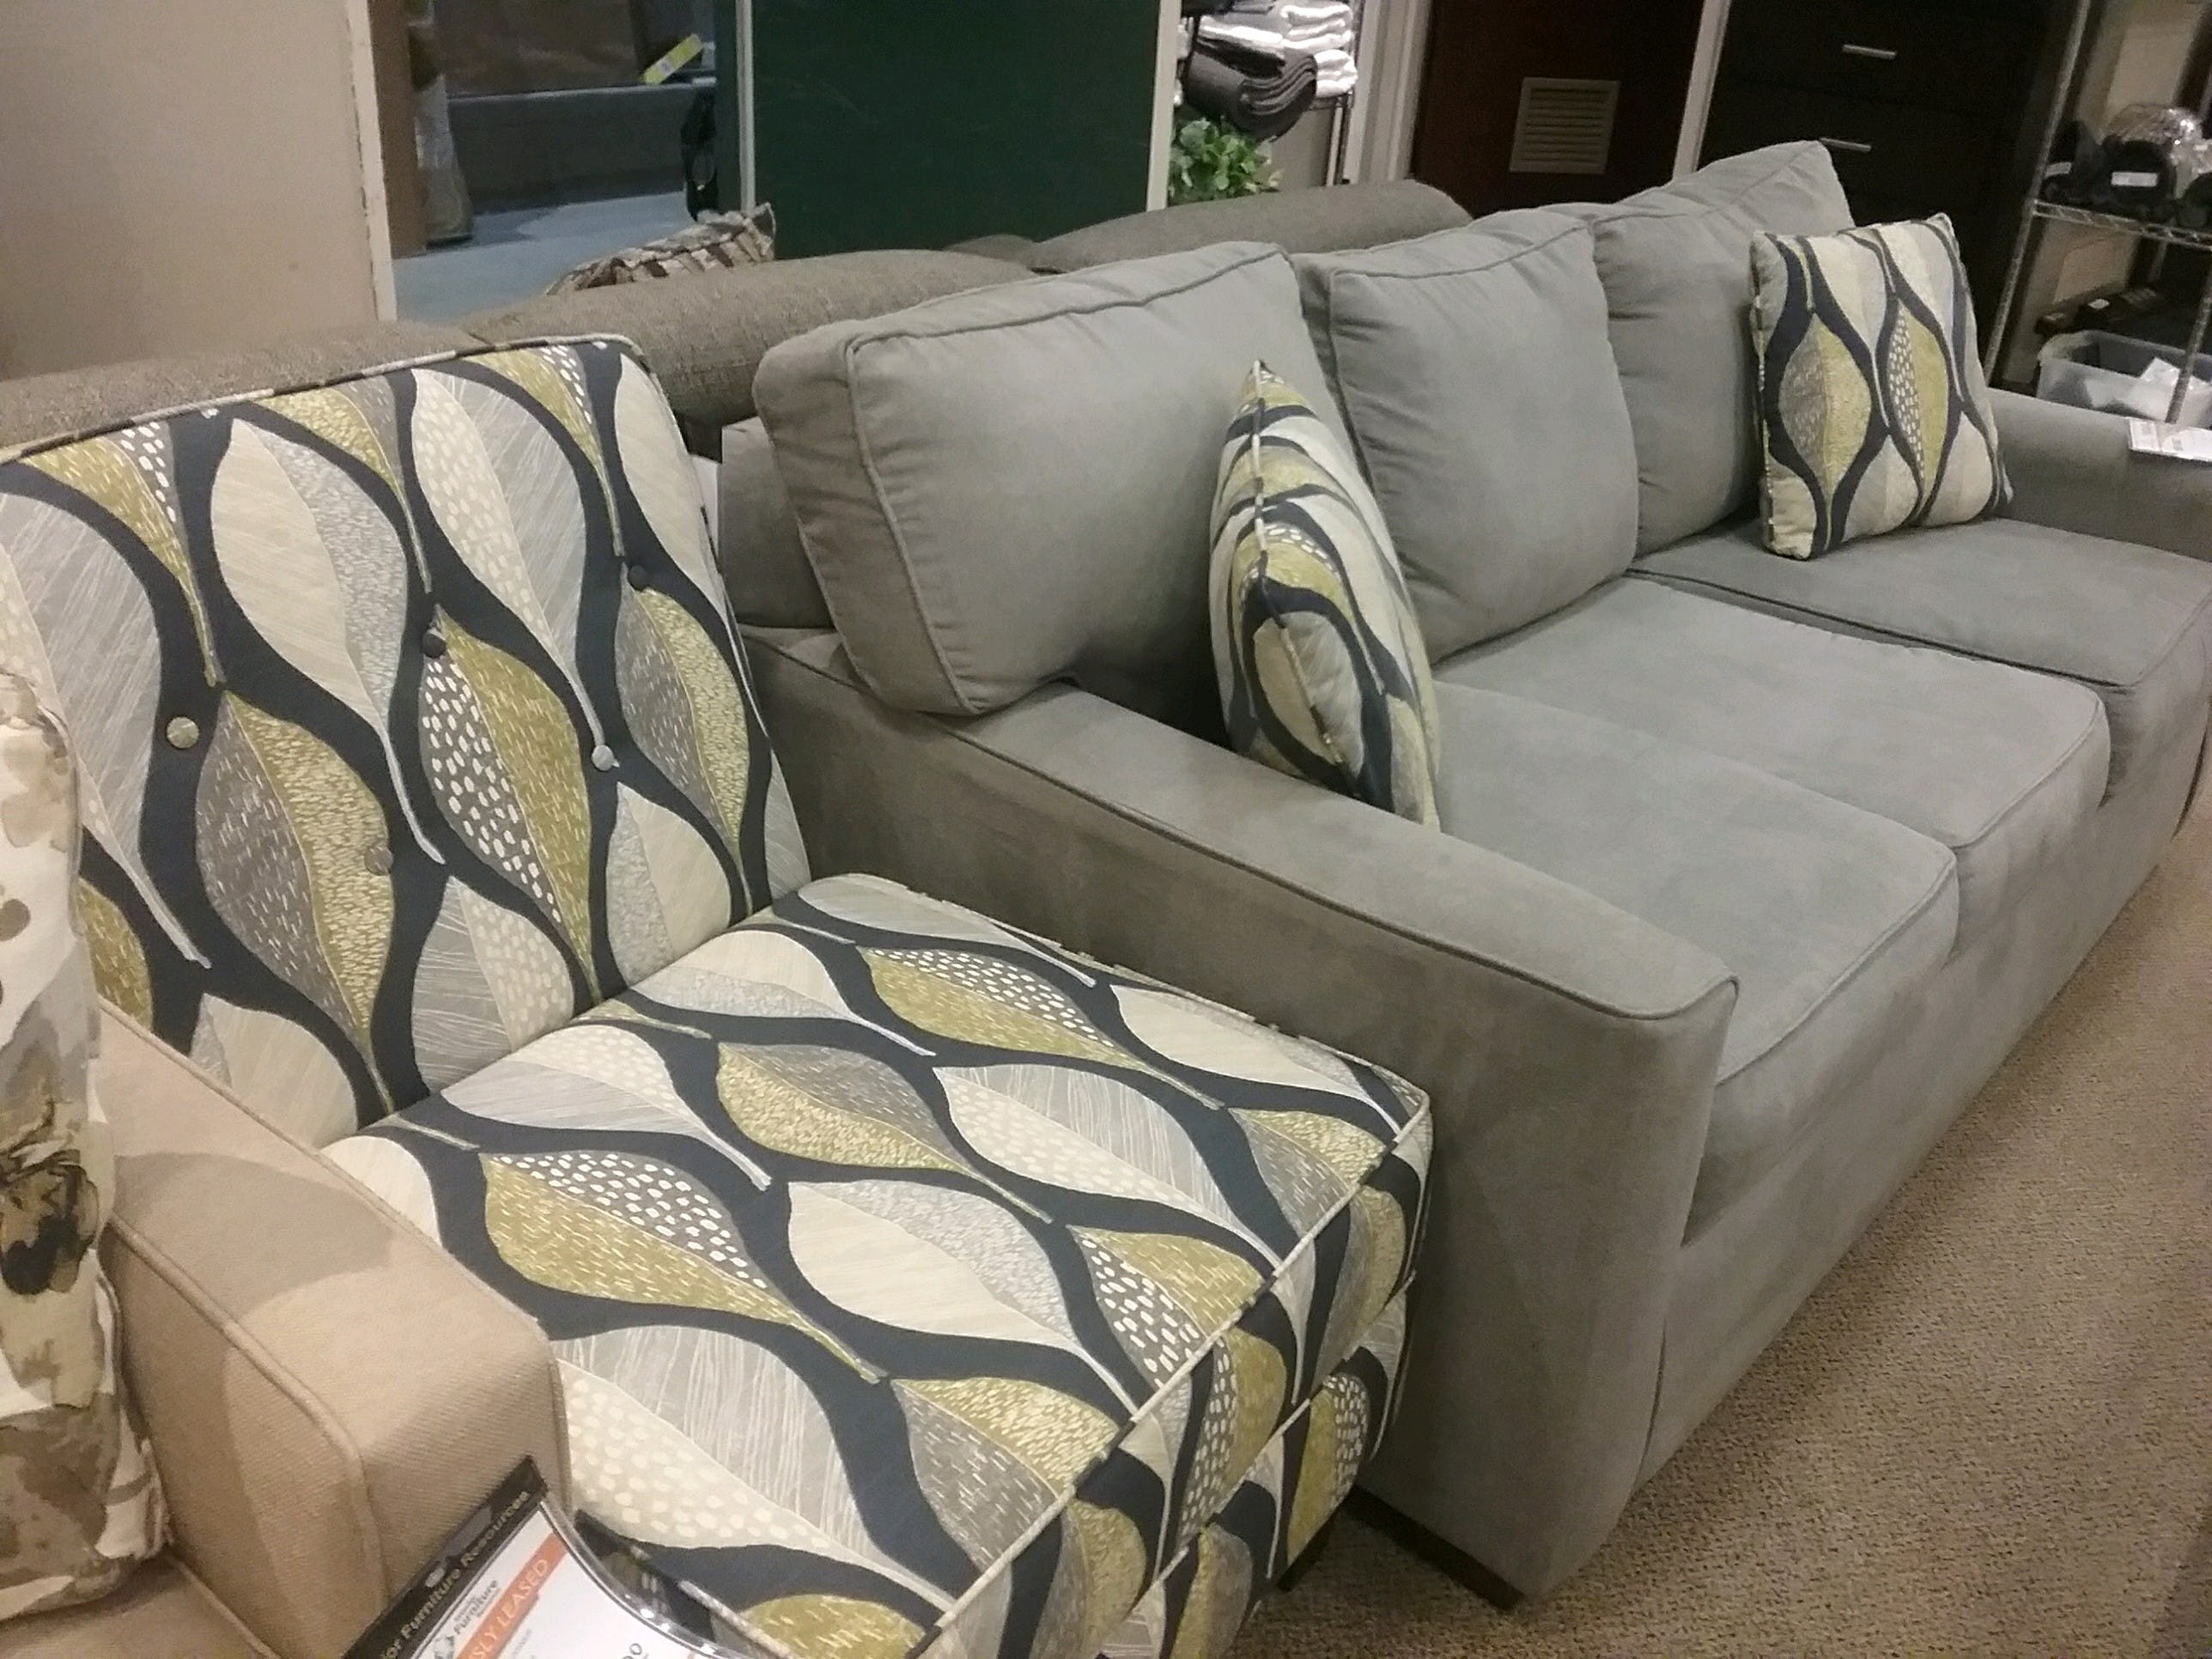 Pantego Sofa 299 And Matching Accent Chair 175